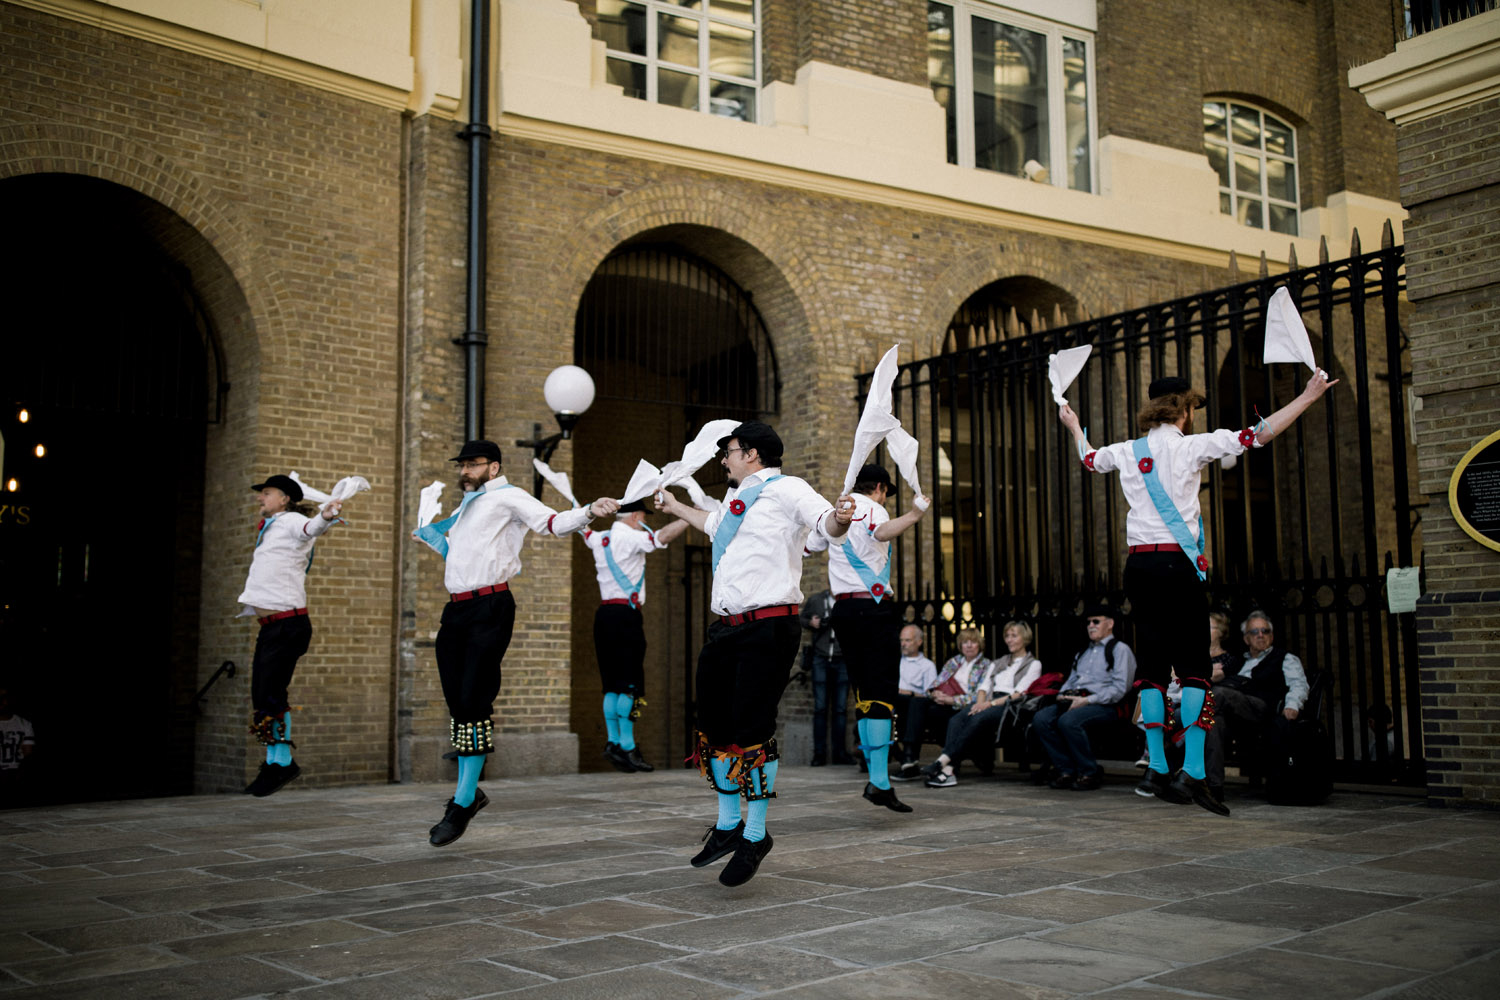 Traditional dance on the streets of London